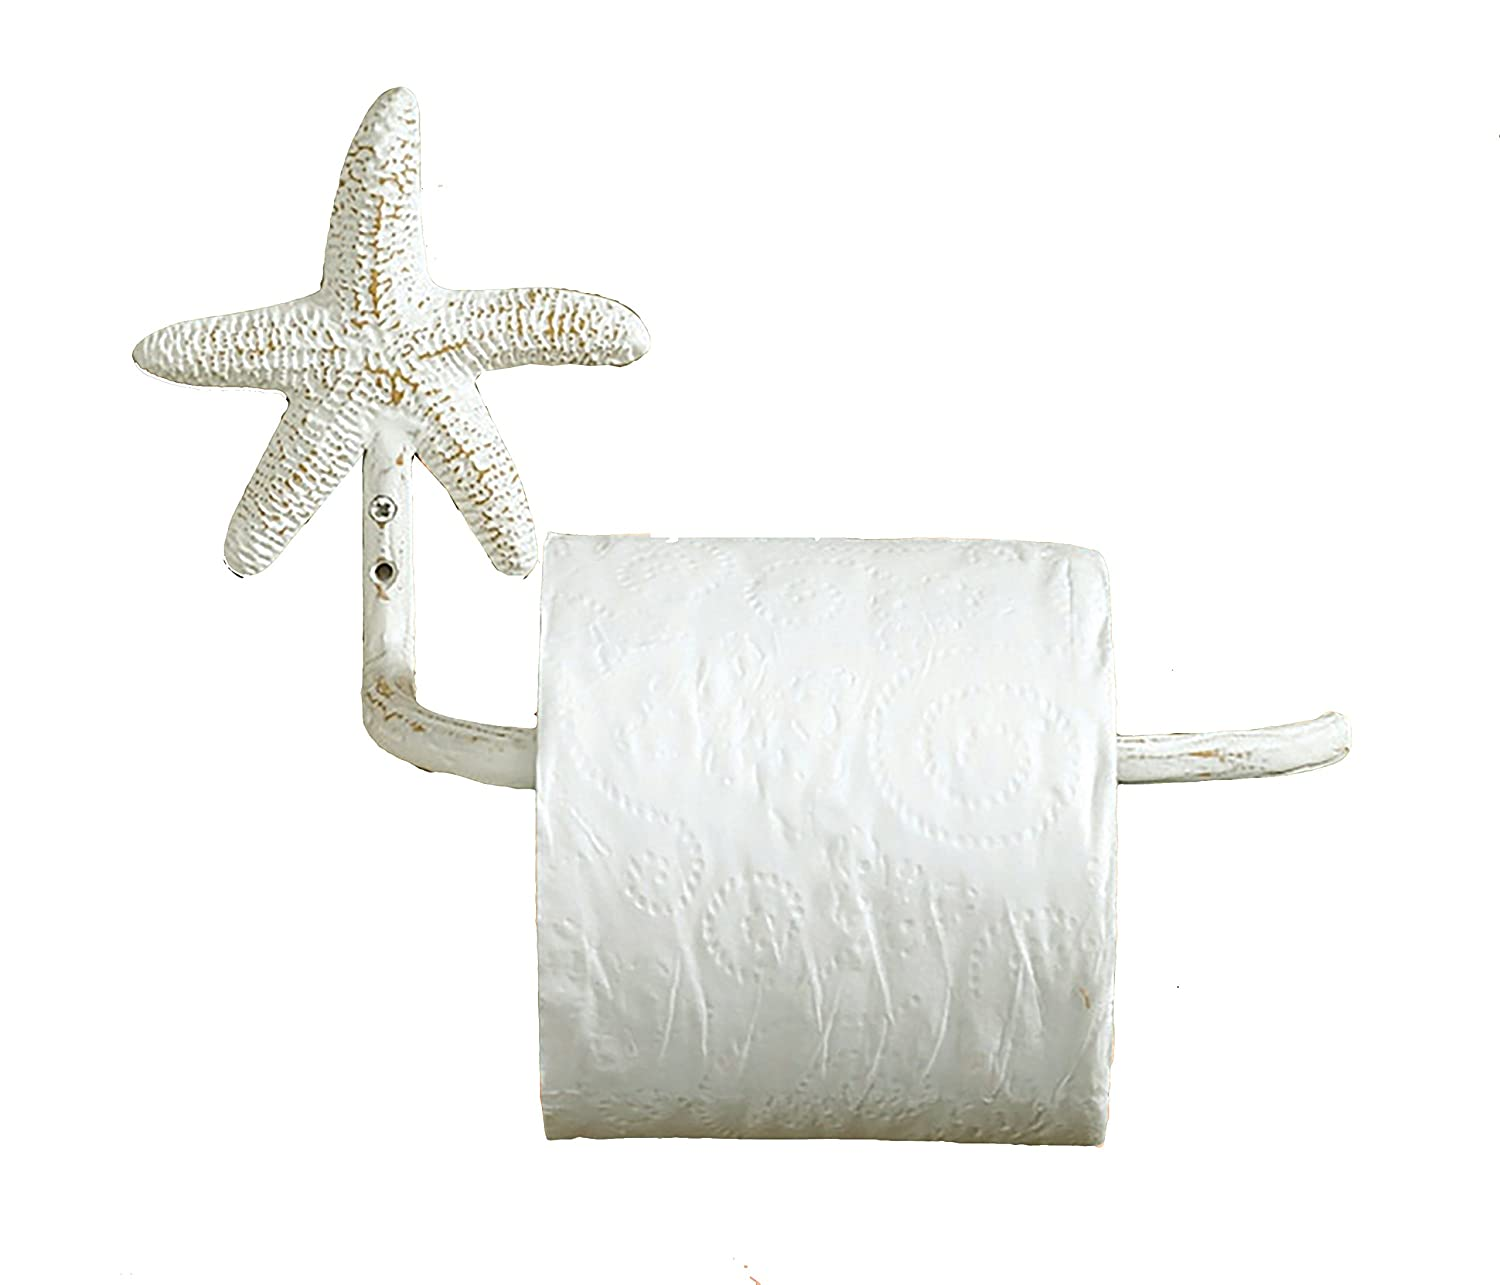 Amazon.com: Park Designs Starfish Toilet Tissue Holder: Home & Kitchen